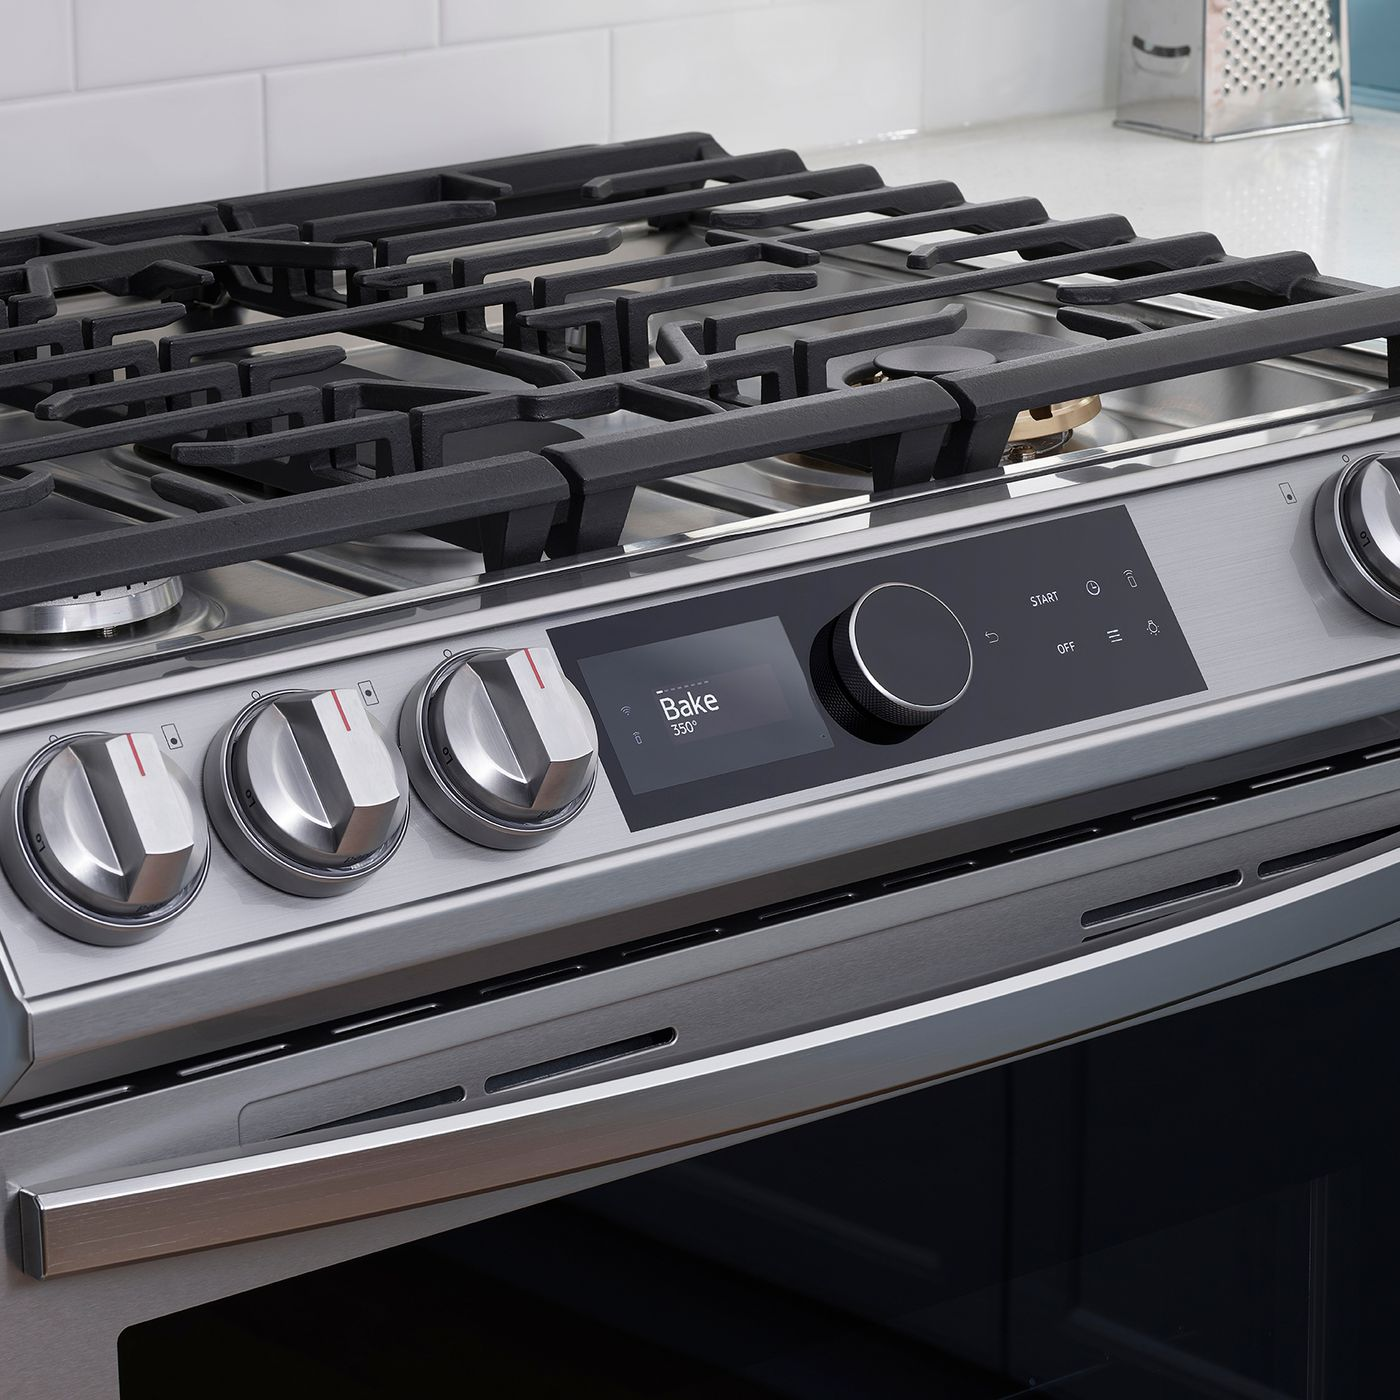 Samsung Appliance Extended Warranty Review This Old House